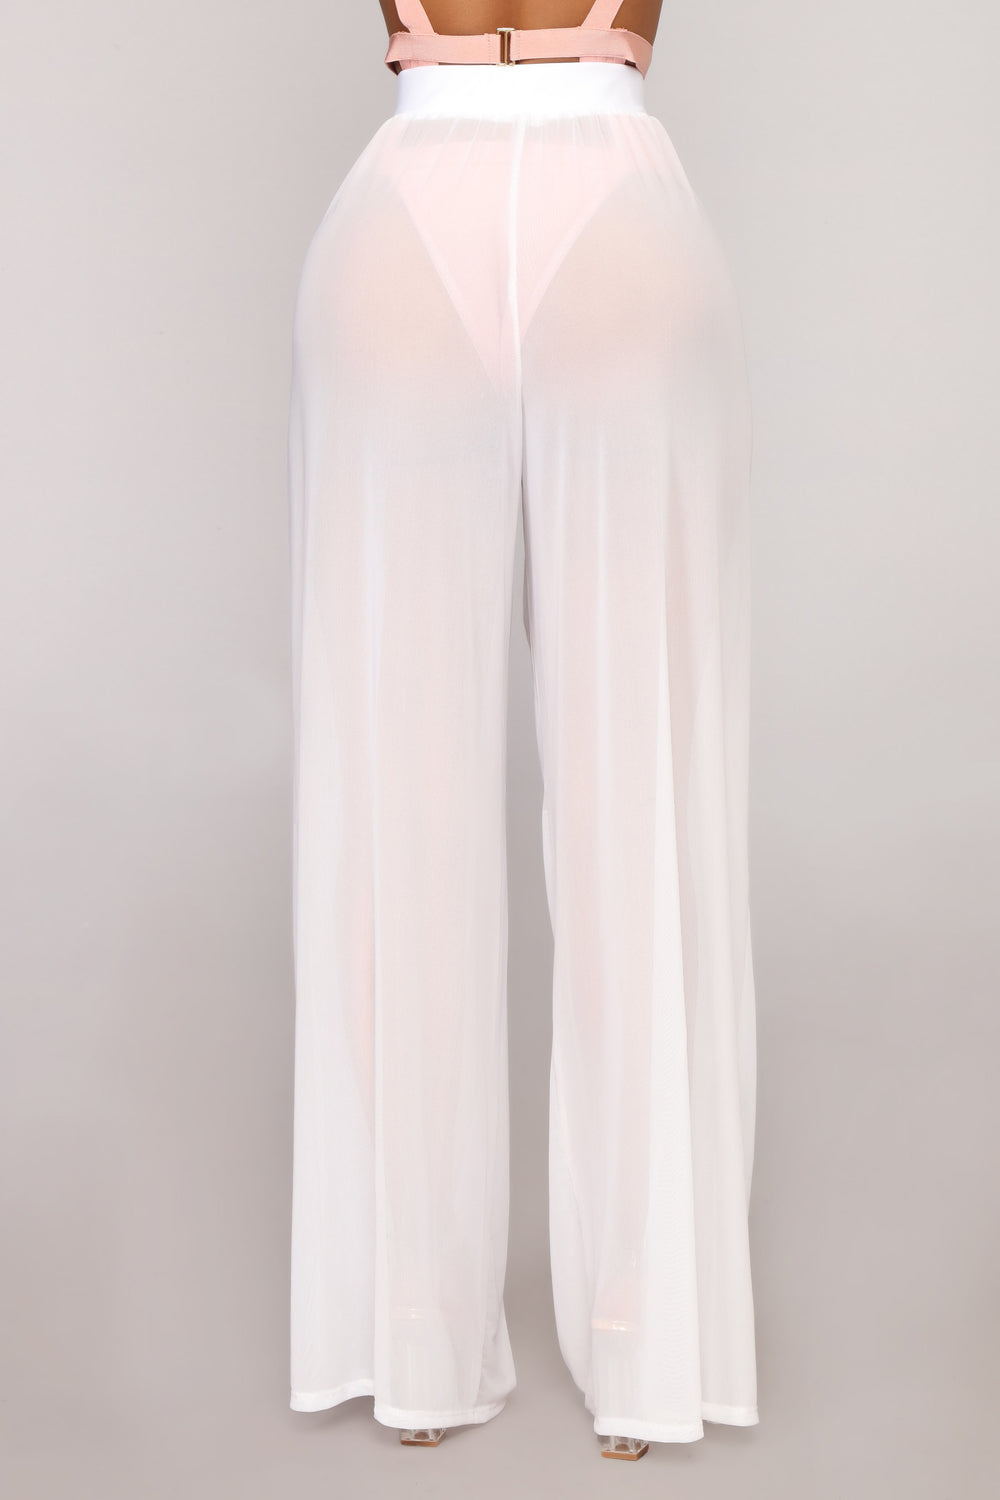 Dare To Cover Coverup Pant - White